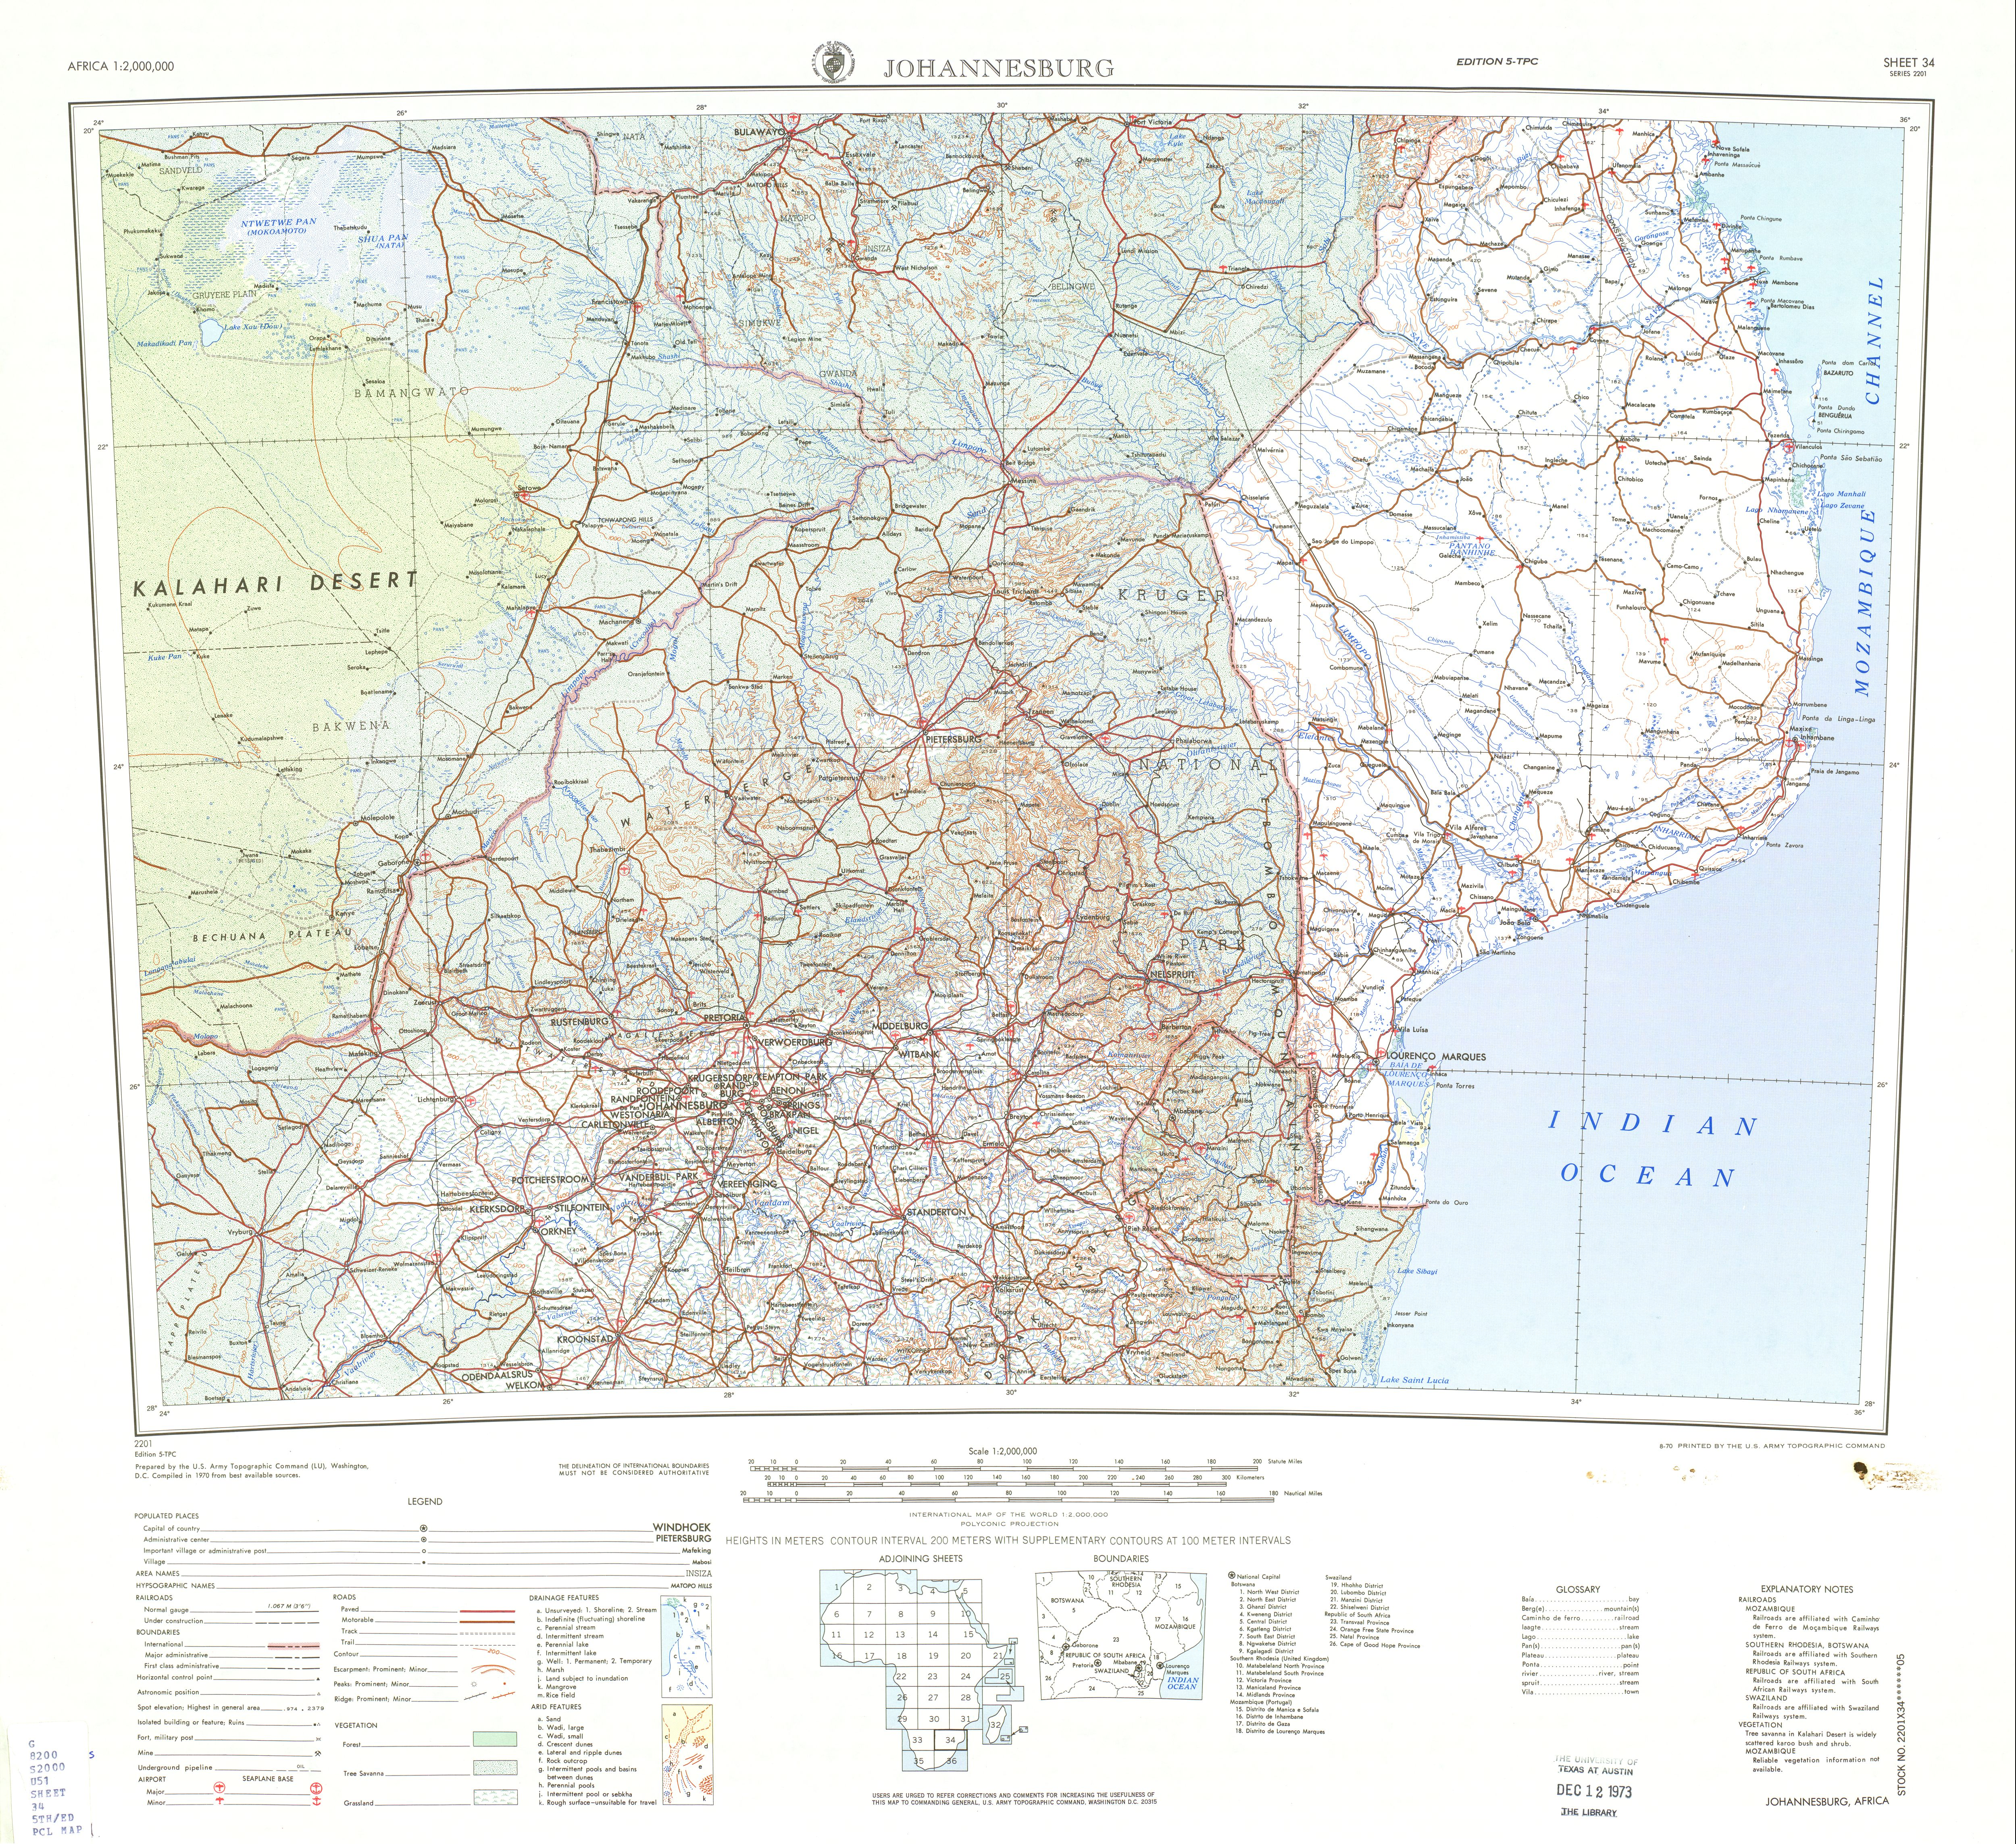 Johannesburg Topographic Sheet Map, Africa 1970